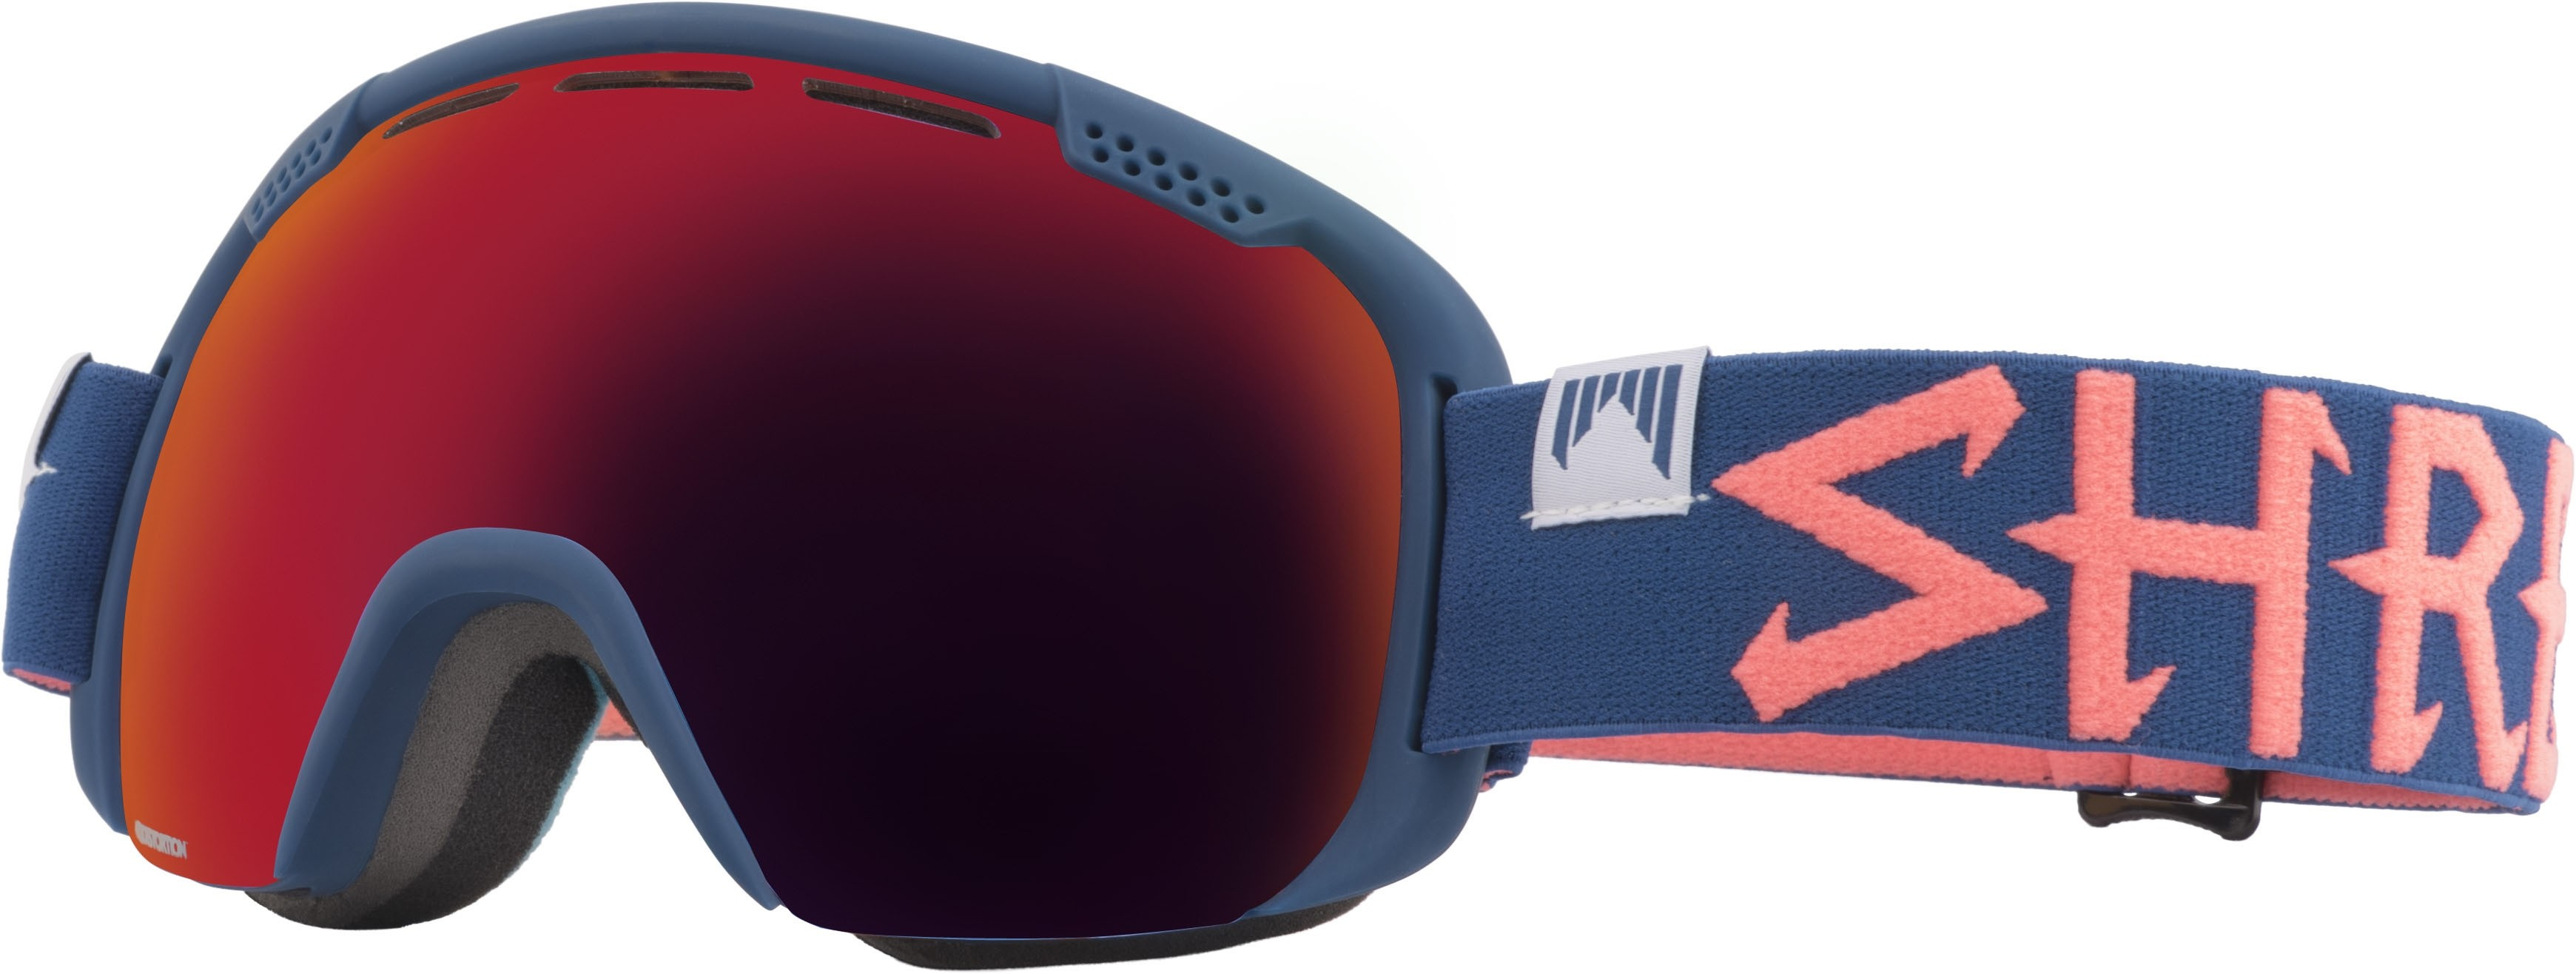 Shred Smartefy Grab goggles, 2018